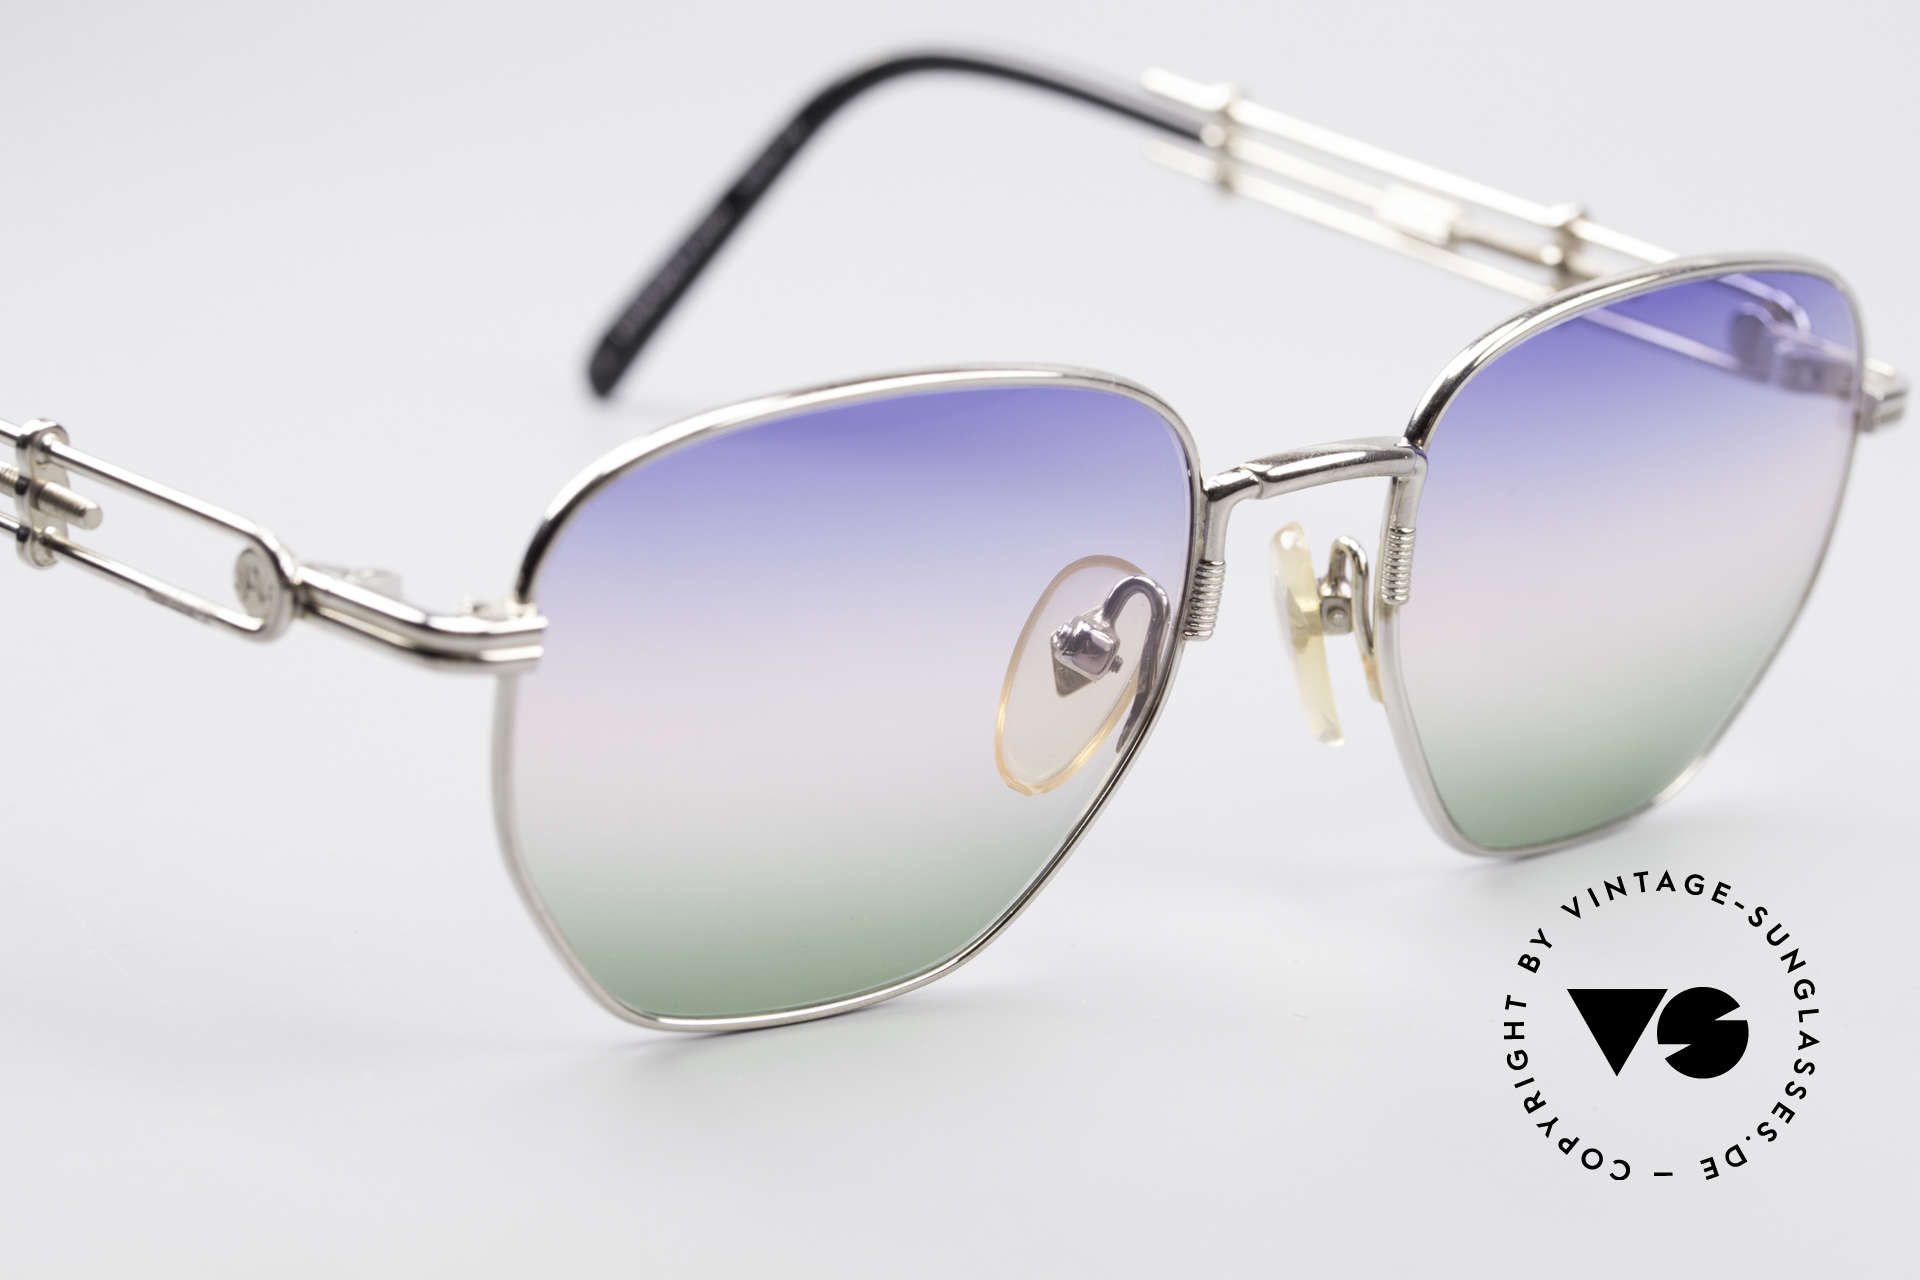 Jean Paul Gaultier 55-4174 Adjustable Vintage Frame, meanwhile, a precious collector's item, worldwide, Made for Men and Women